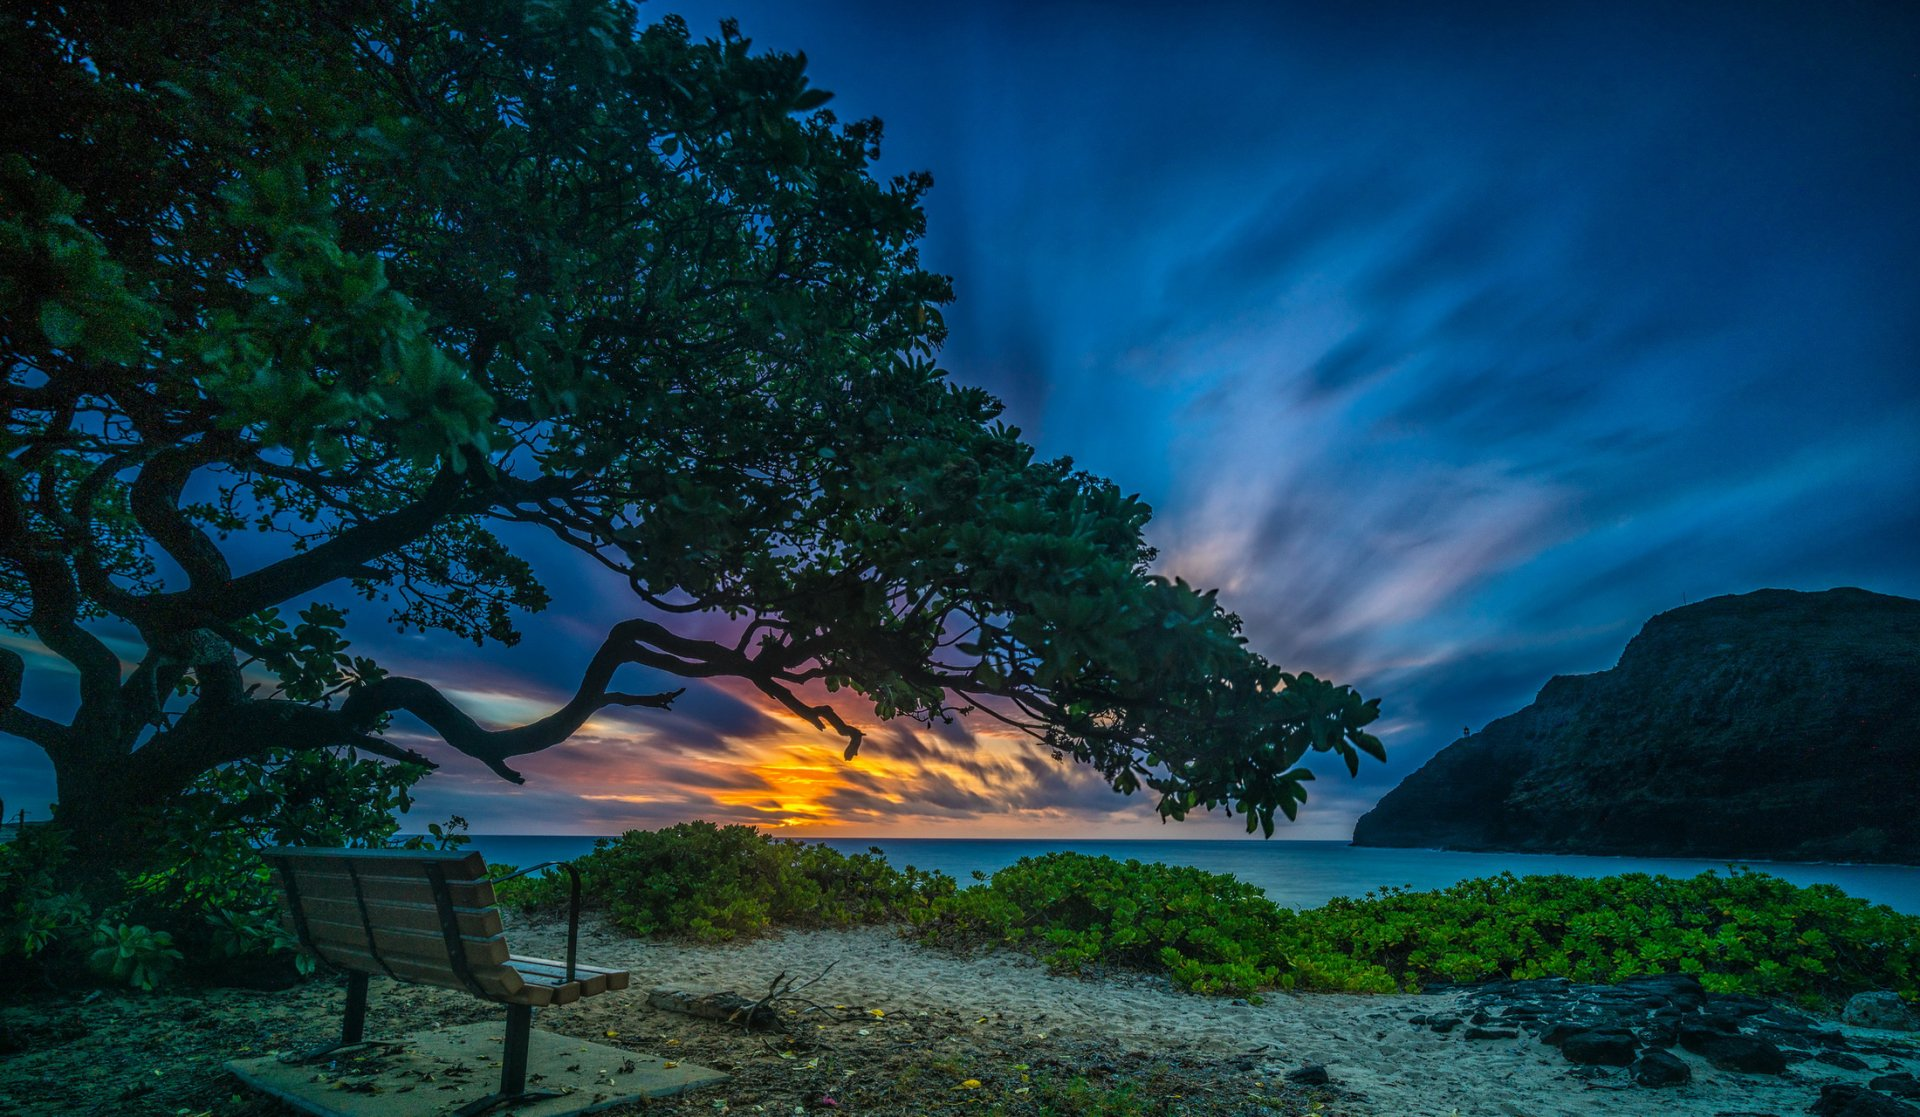 Man Made - Bench  Lake Sunset Tree Tropical Horizon Wallpaper